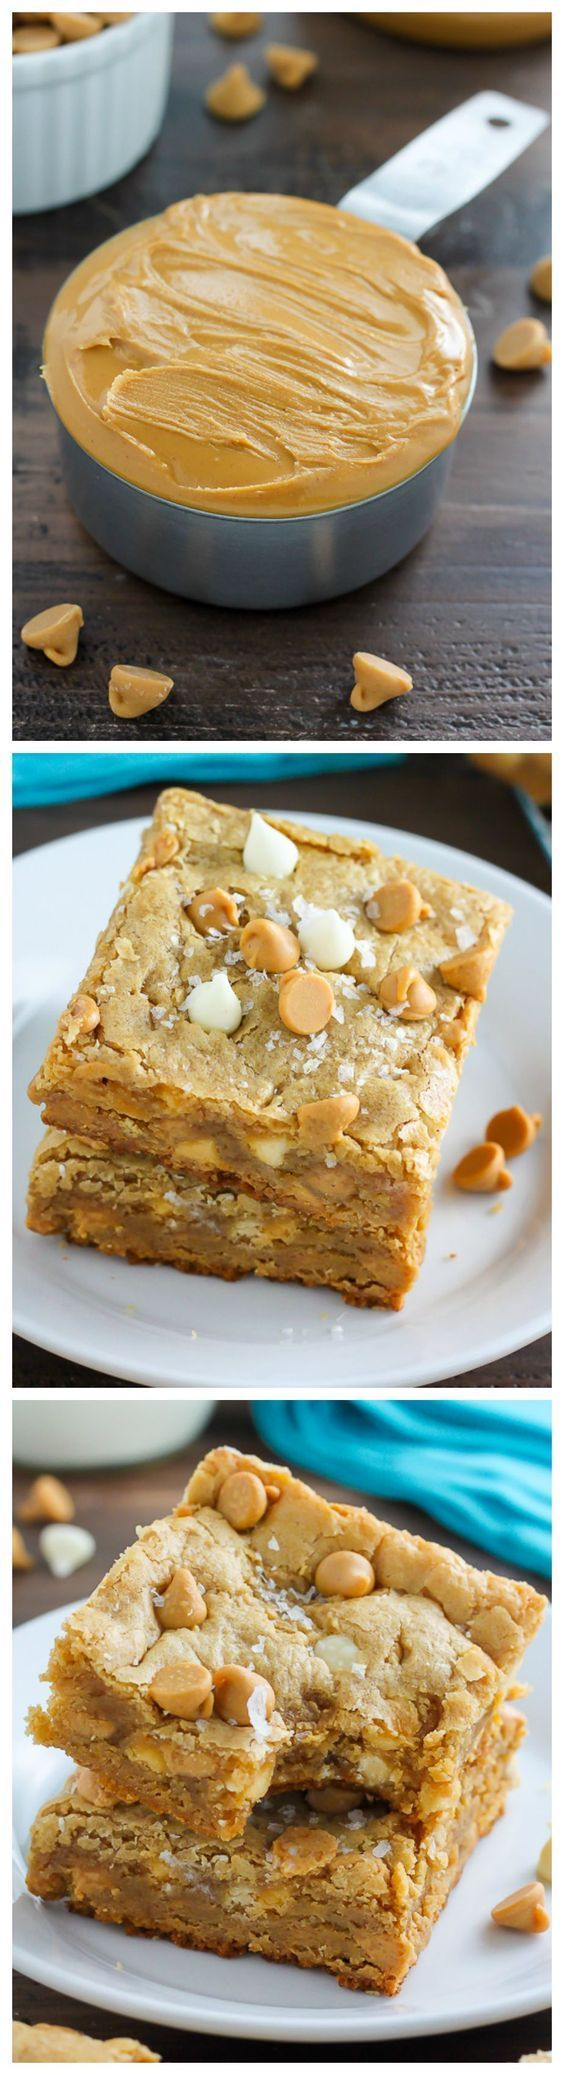 Thick and Chewy White Chocolate Peanut Butter Blondies. So good with a cup of coffee!